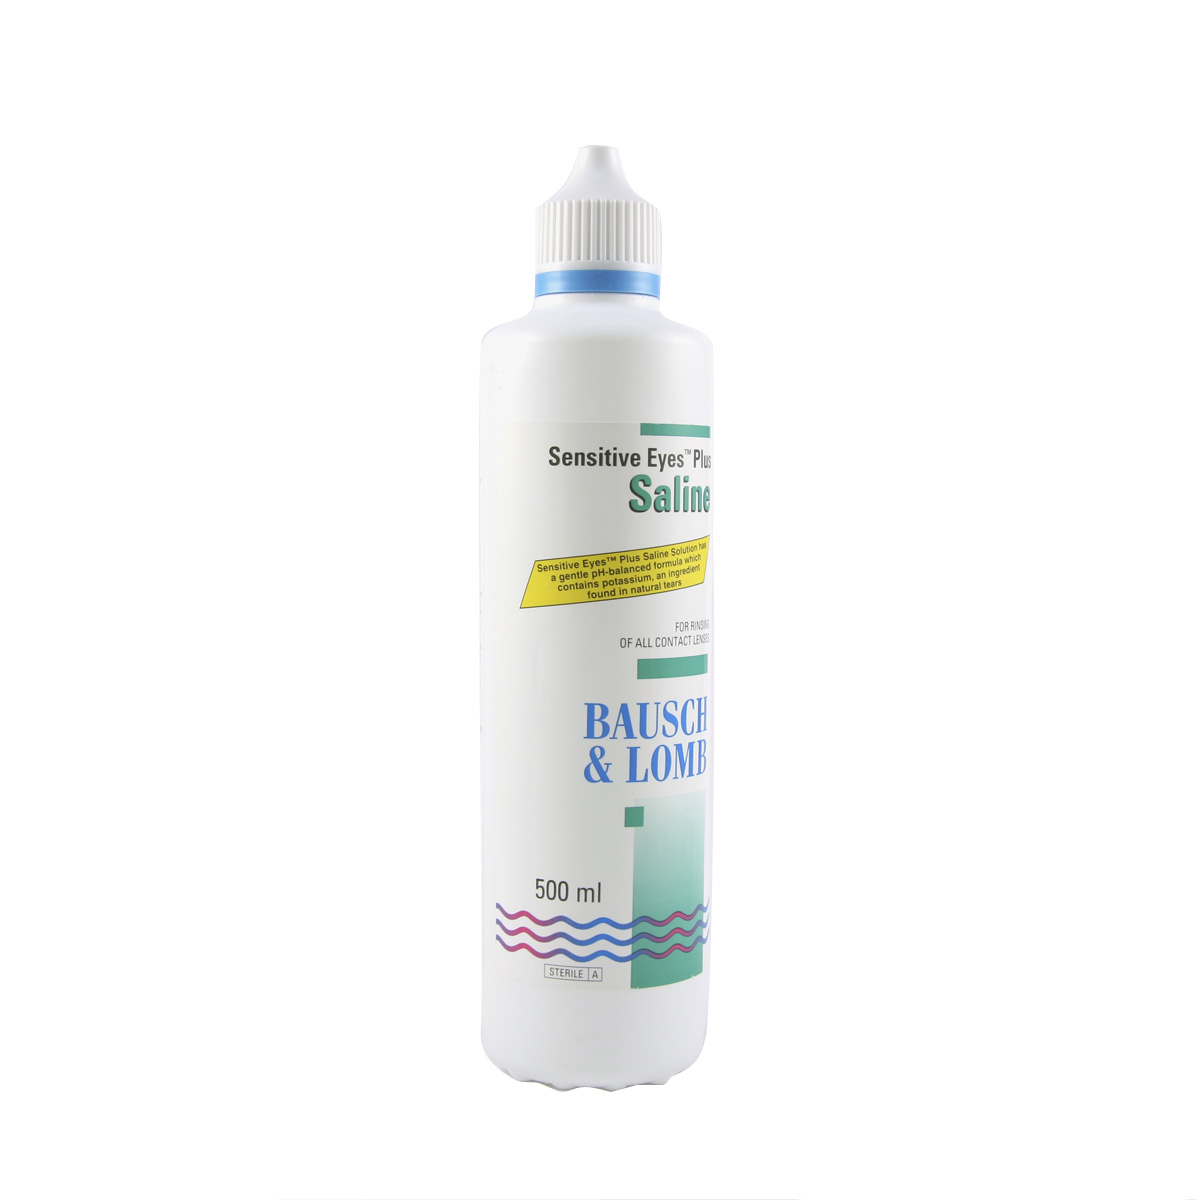 Lenstore Sensitive Eyes Plus - Saline (500ml)